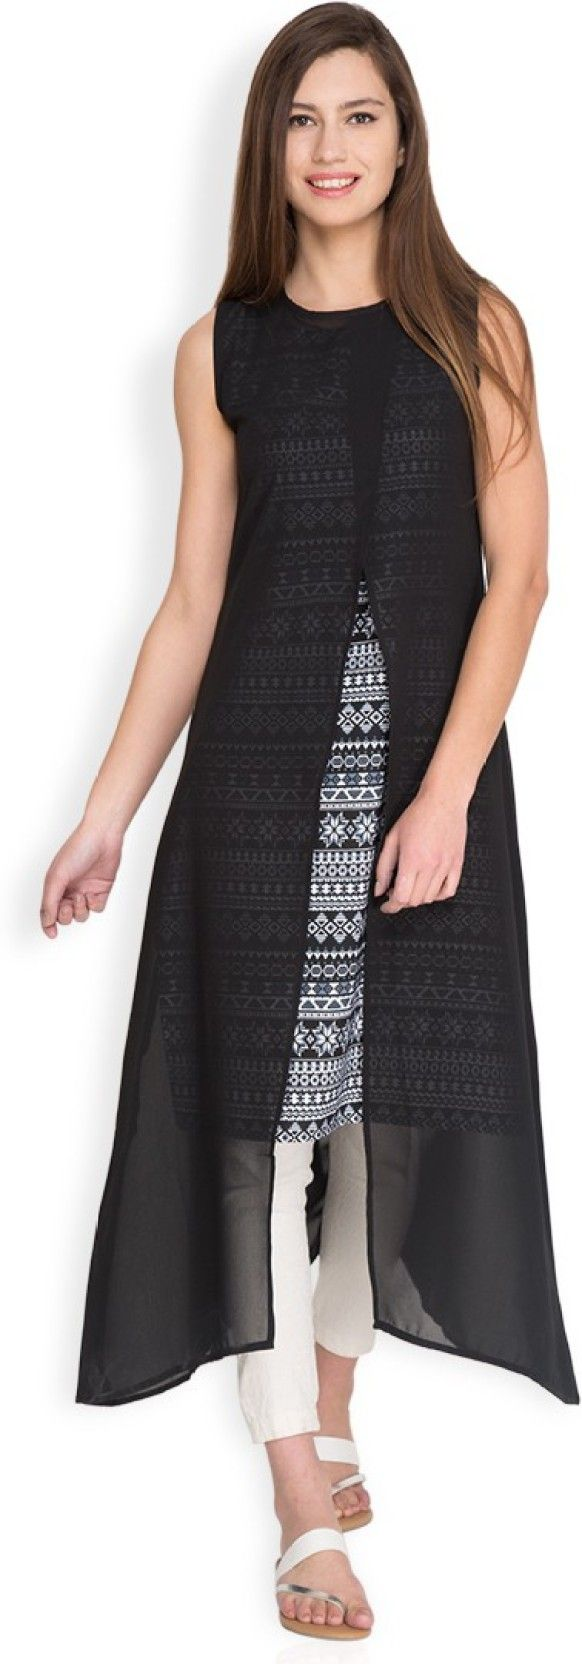 Vishudh Festive & Party Printed Women's Kurti  (Black, White) can be yours for just Rs. 539